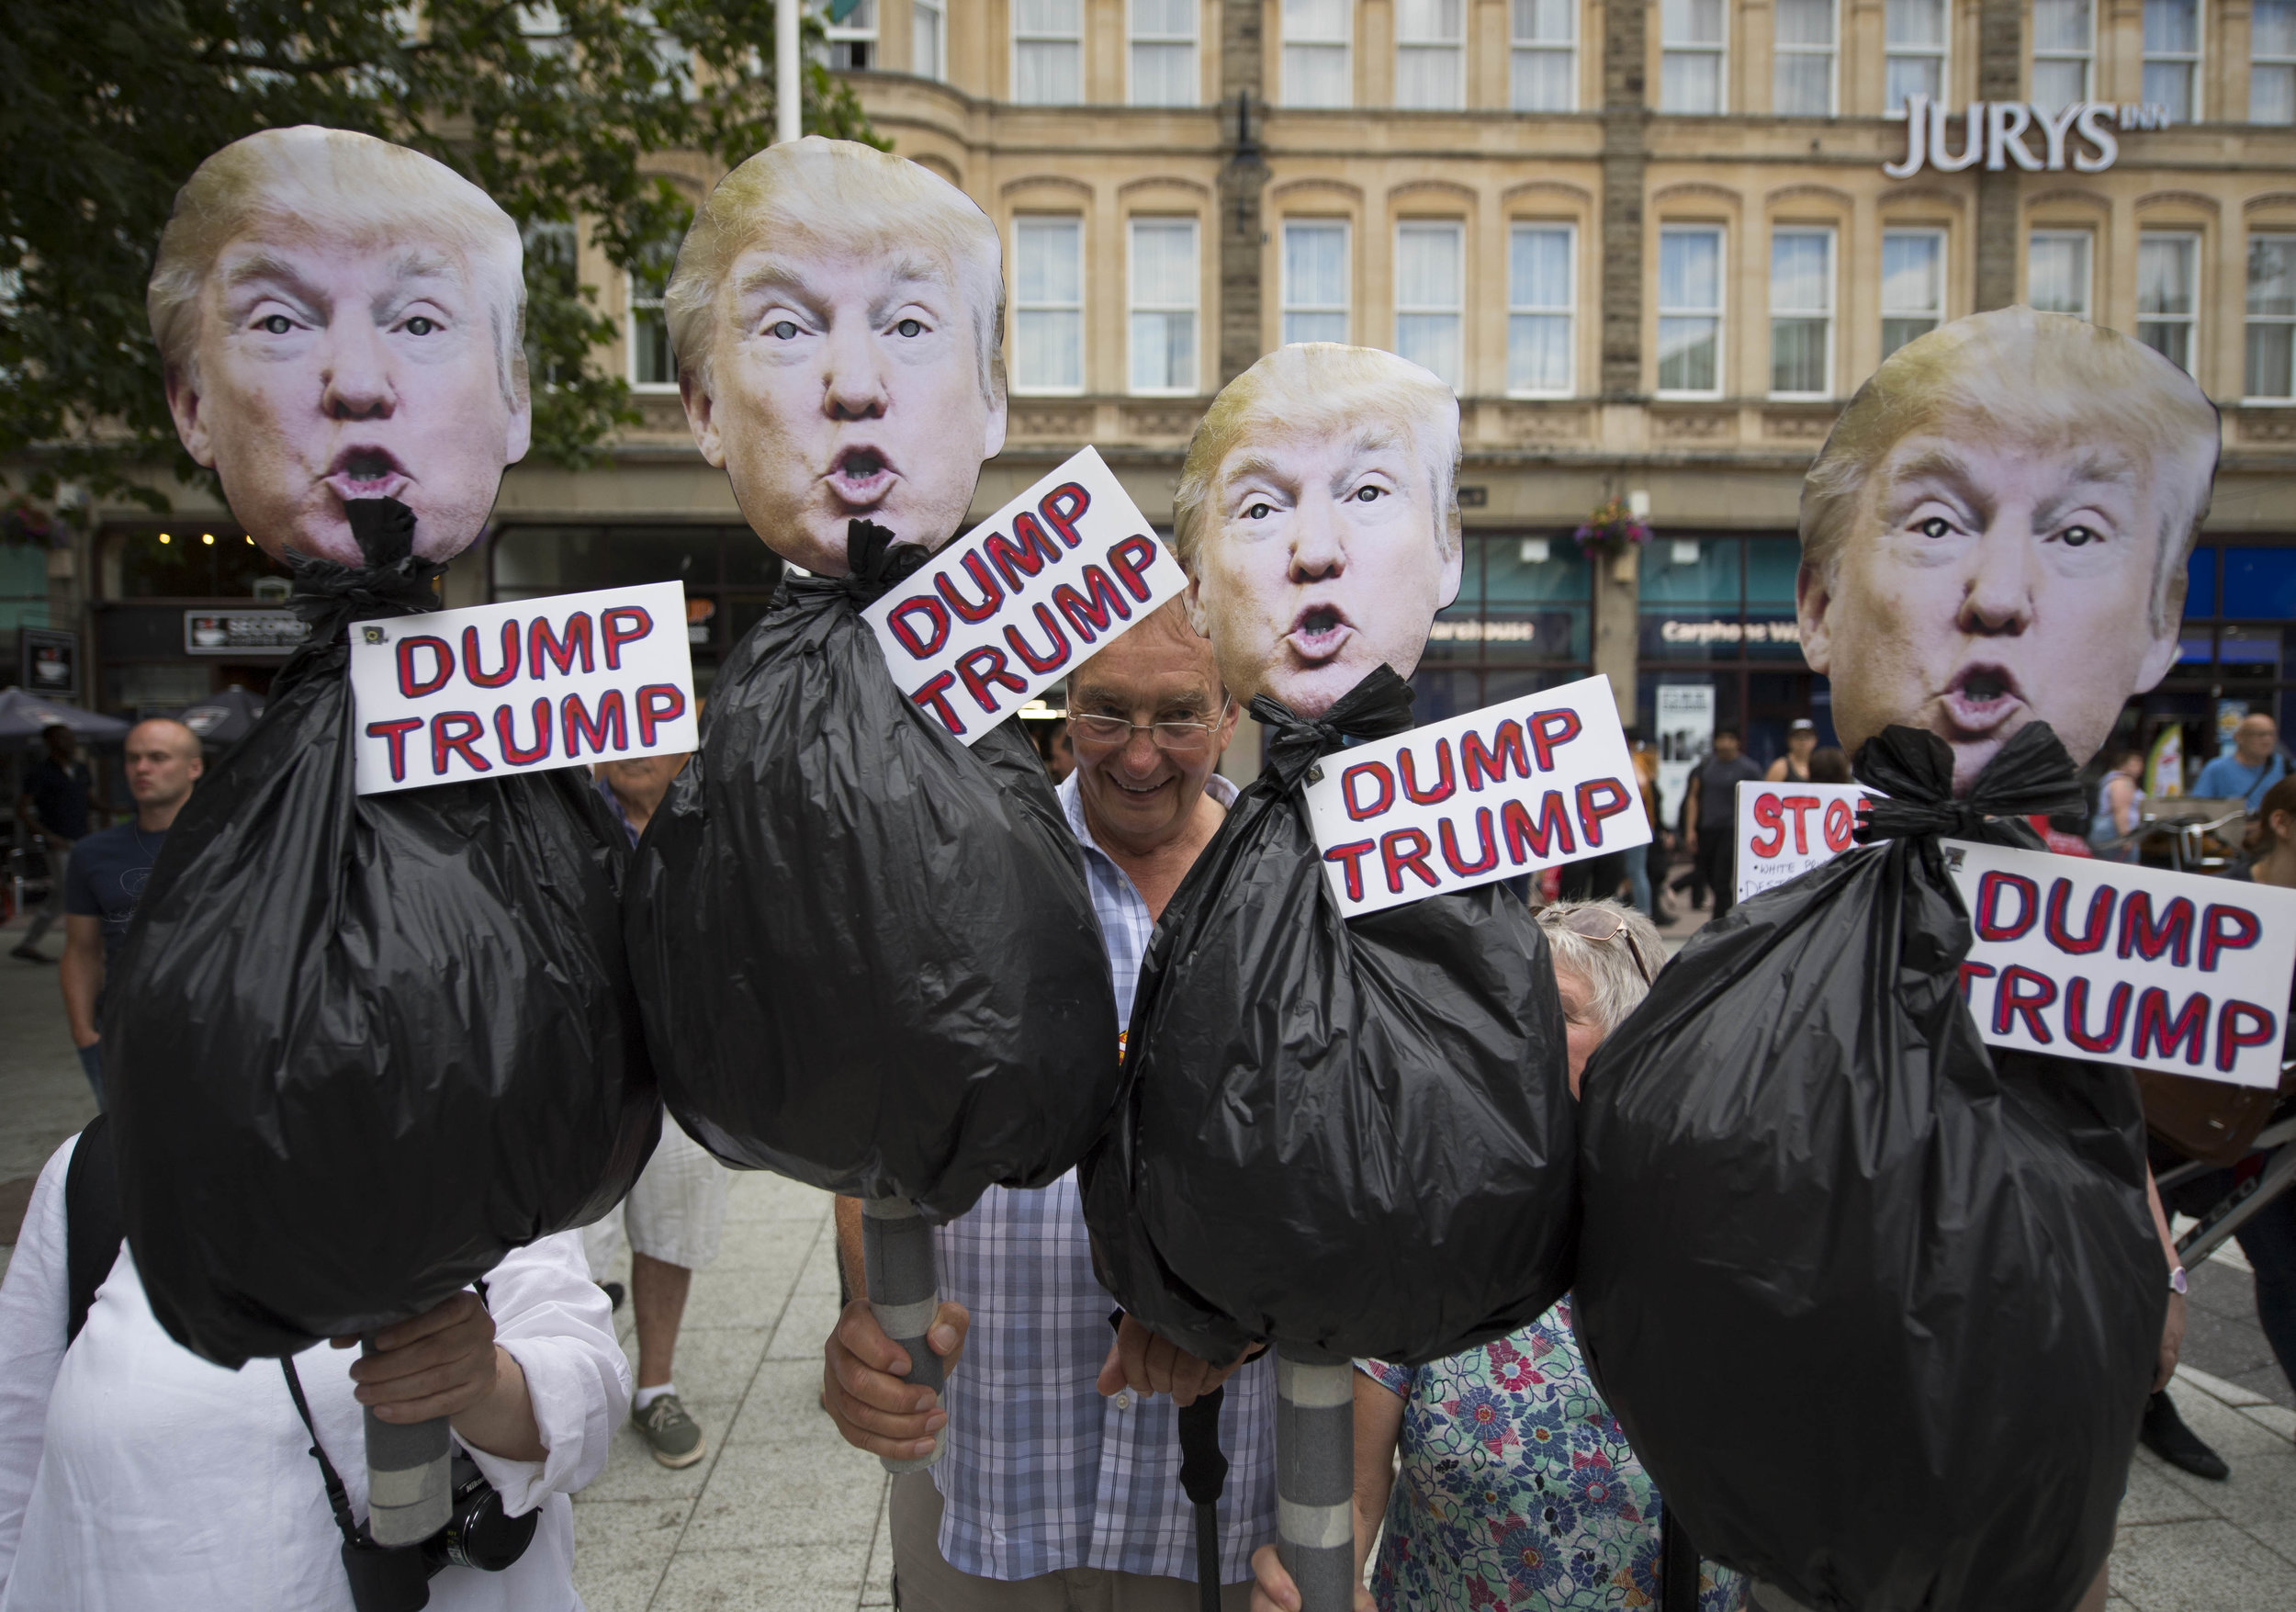 CARDIFF, UNITED KINGDOM - JULY 12: Protestors hold anti Donald Trump signs during a protest on Queen Street against a visit by the President of the United States Donald Trump on July 12, 2018 in Cardiff, United Kingdom. The President of the United States and First Lady, Melania Trump, have arrived in the United Kingdom for their first official visit. They are due to have dinner at Blenheim Palace, visit Prime Minister Theresa May at Chequers and have tea with the Queen at Windsor Castle. (Photo by Matthew Horwood/Getty Images)